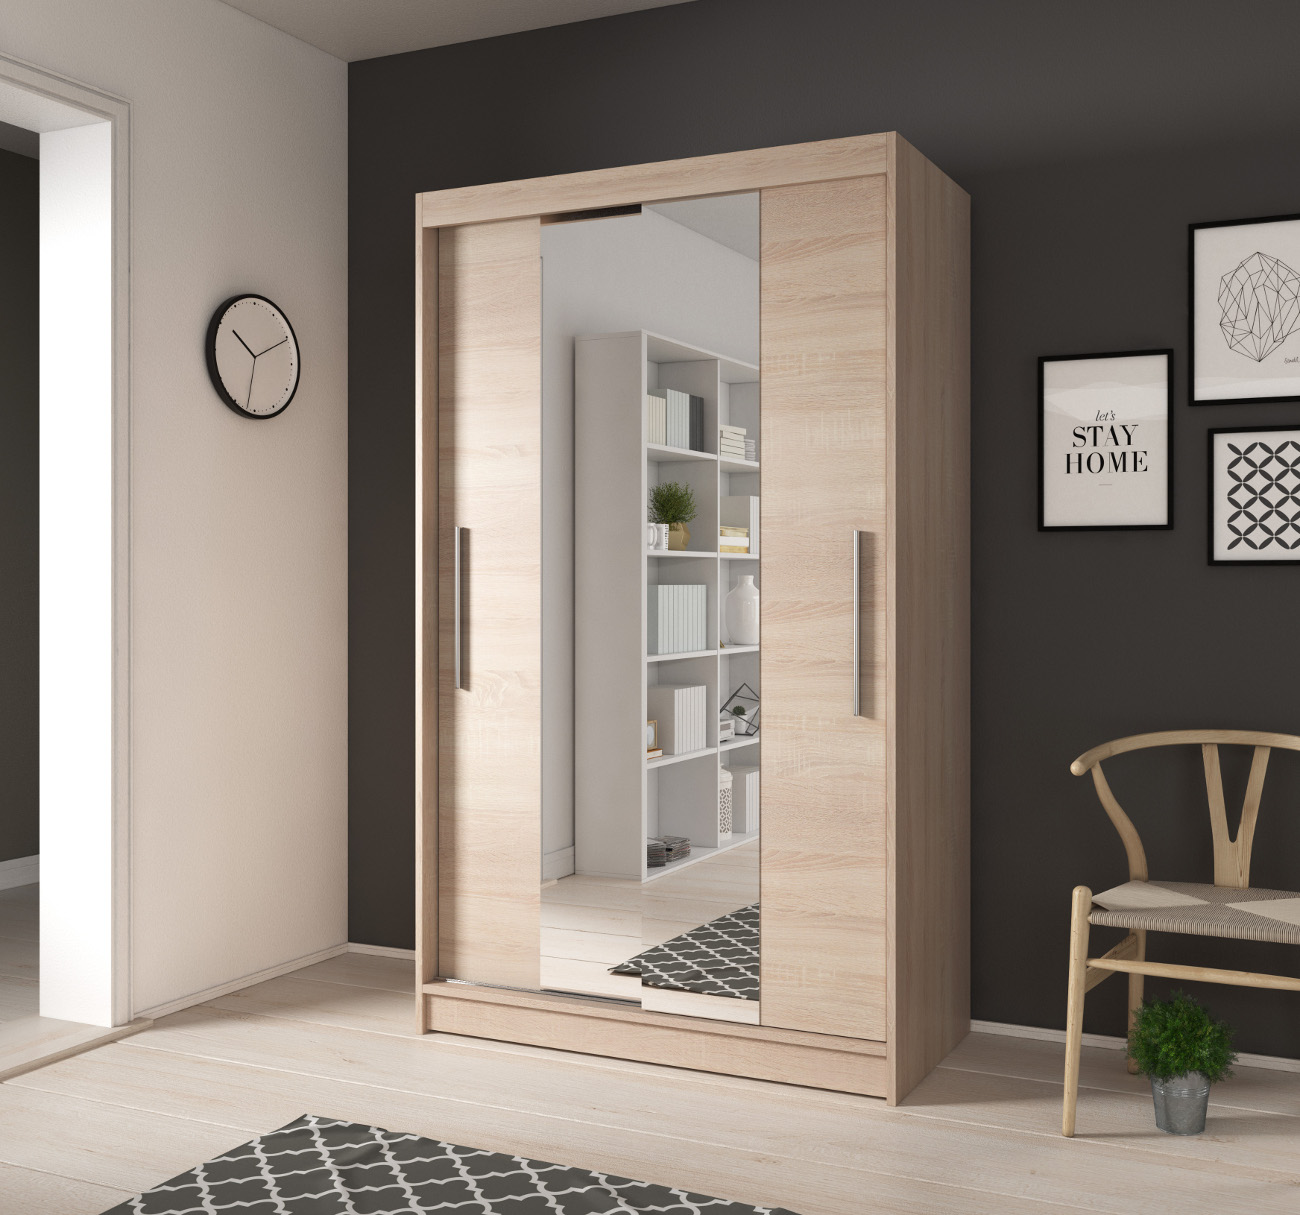 kleiner kleiderschrank mit spiegel schwebet ren wei sonoma 120 cm noah01 ebay. Black Bedroom Furniture Sets. Home Design Ideas